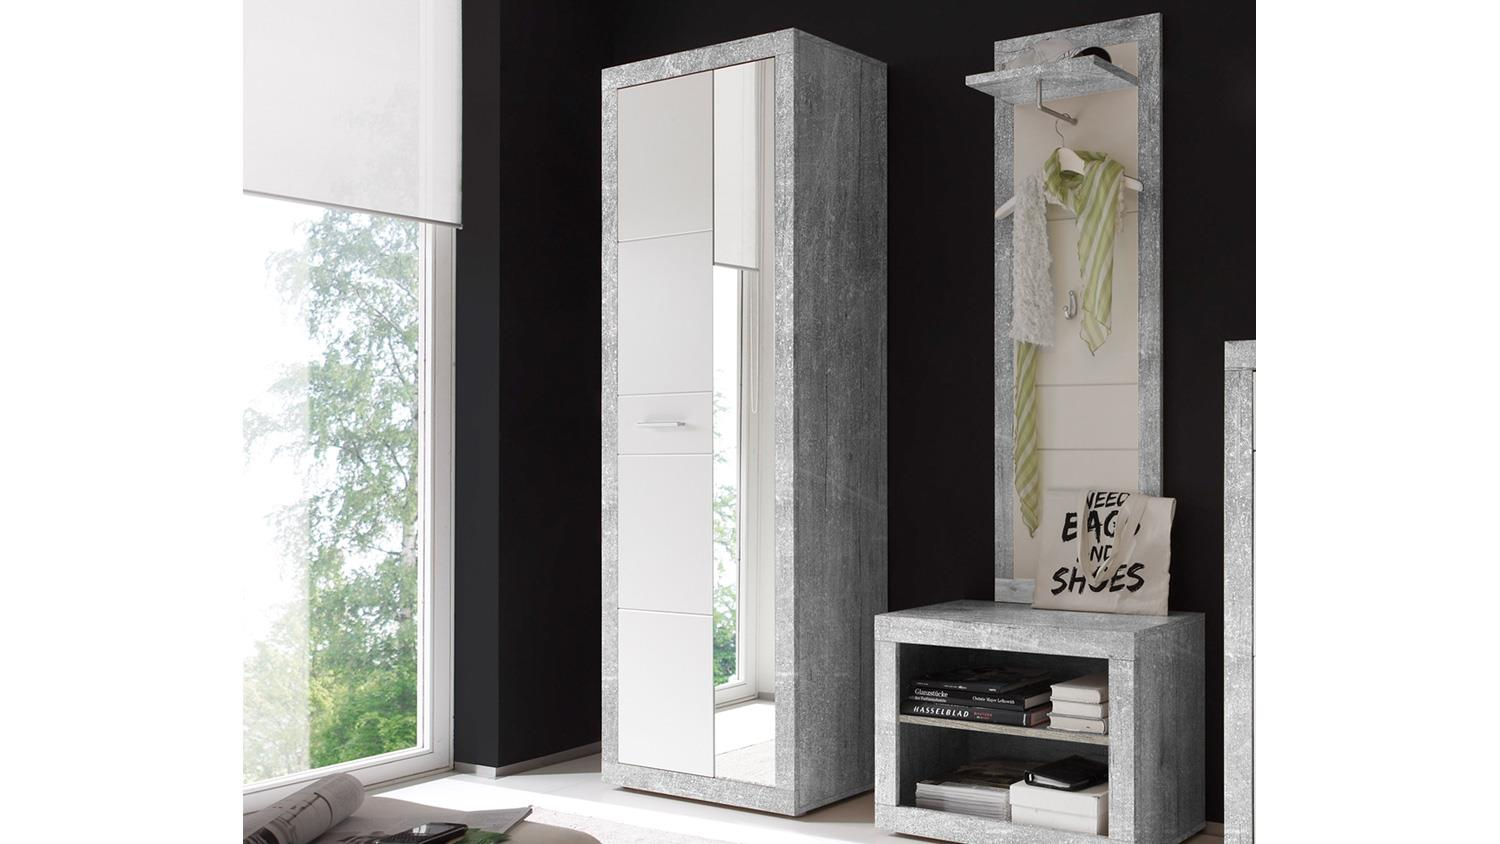 garderobenschrank stone in beton optik grau und wei glanz mit spiegel. Black Bedroom Furniture Sets. Home Design Ideas